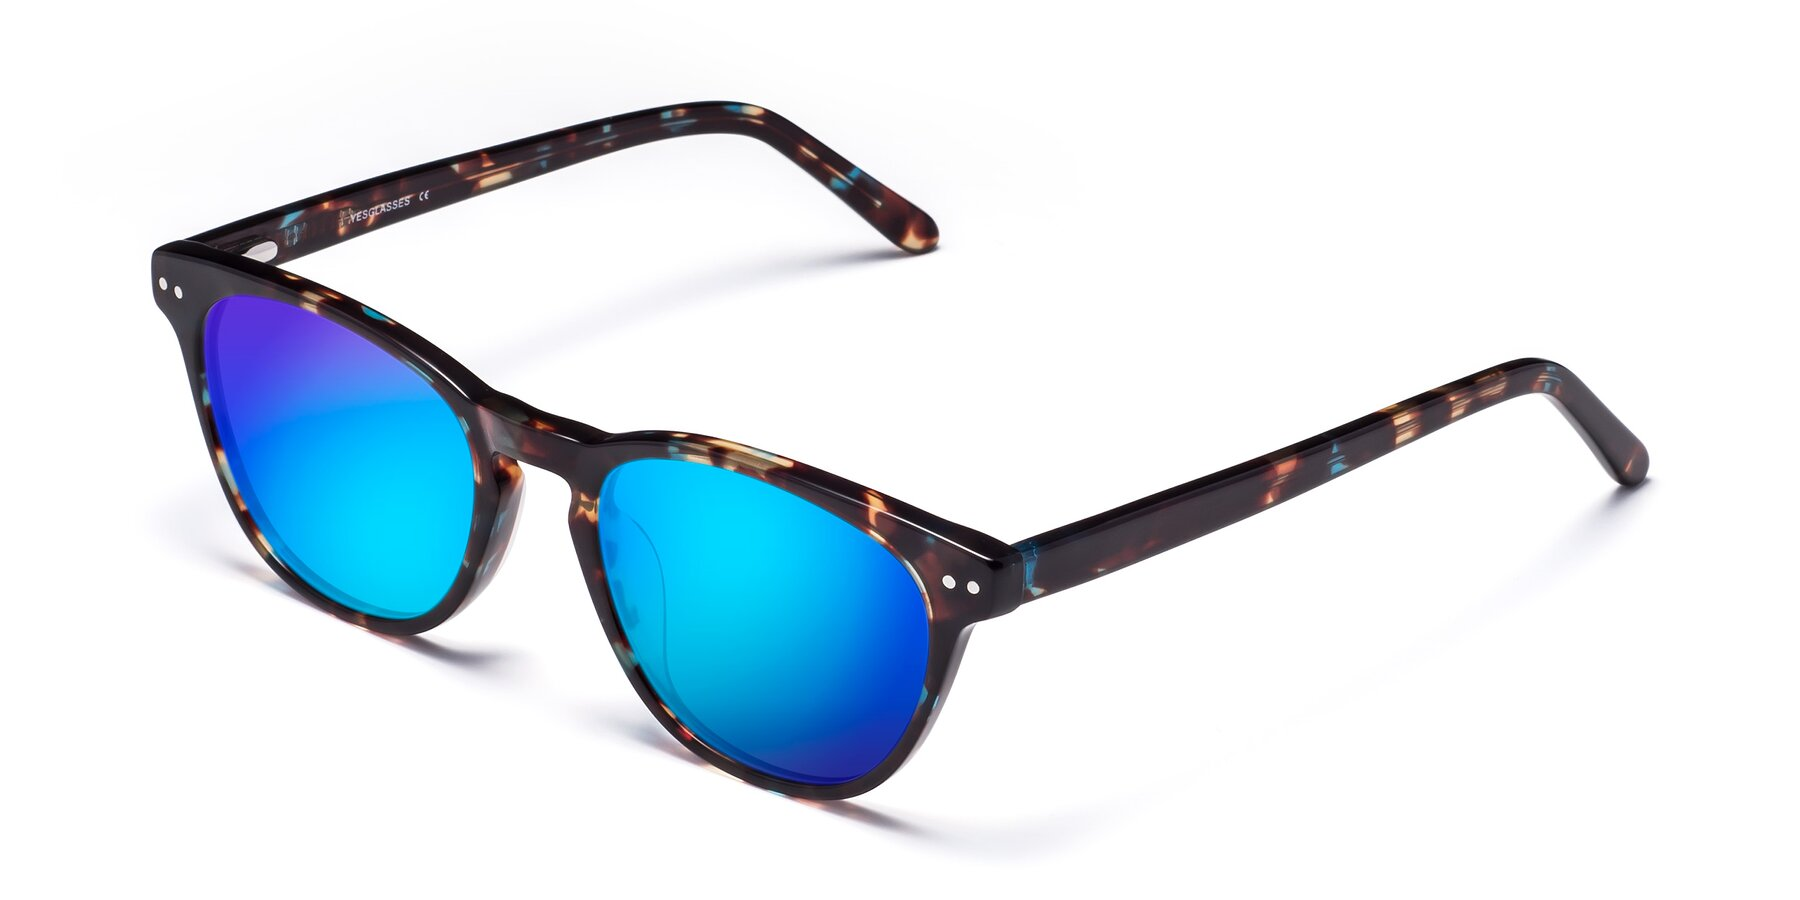 Angle of Blaze in Tortoise-Blue with Blue Mirrored Lenses